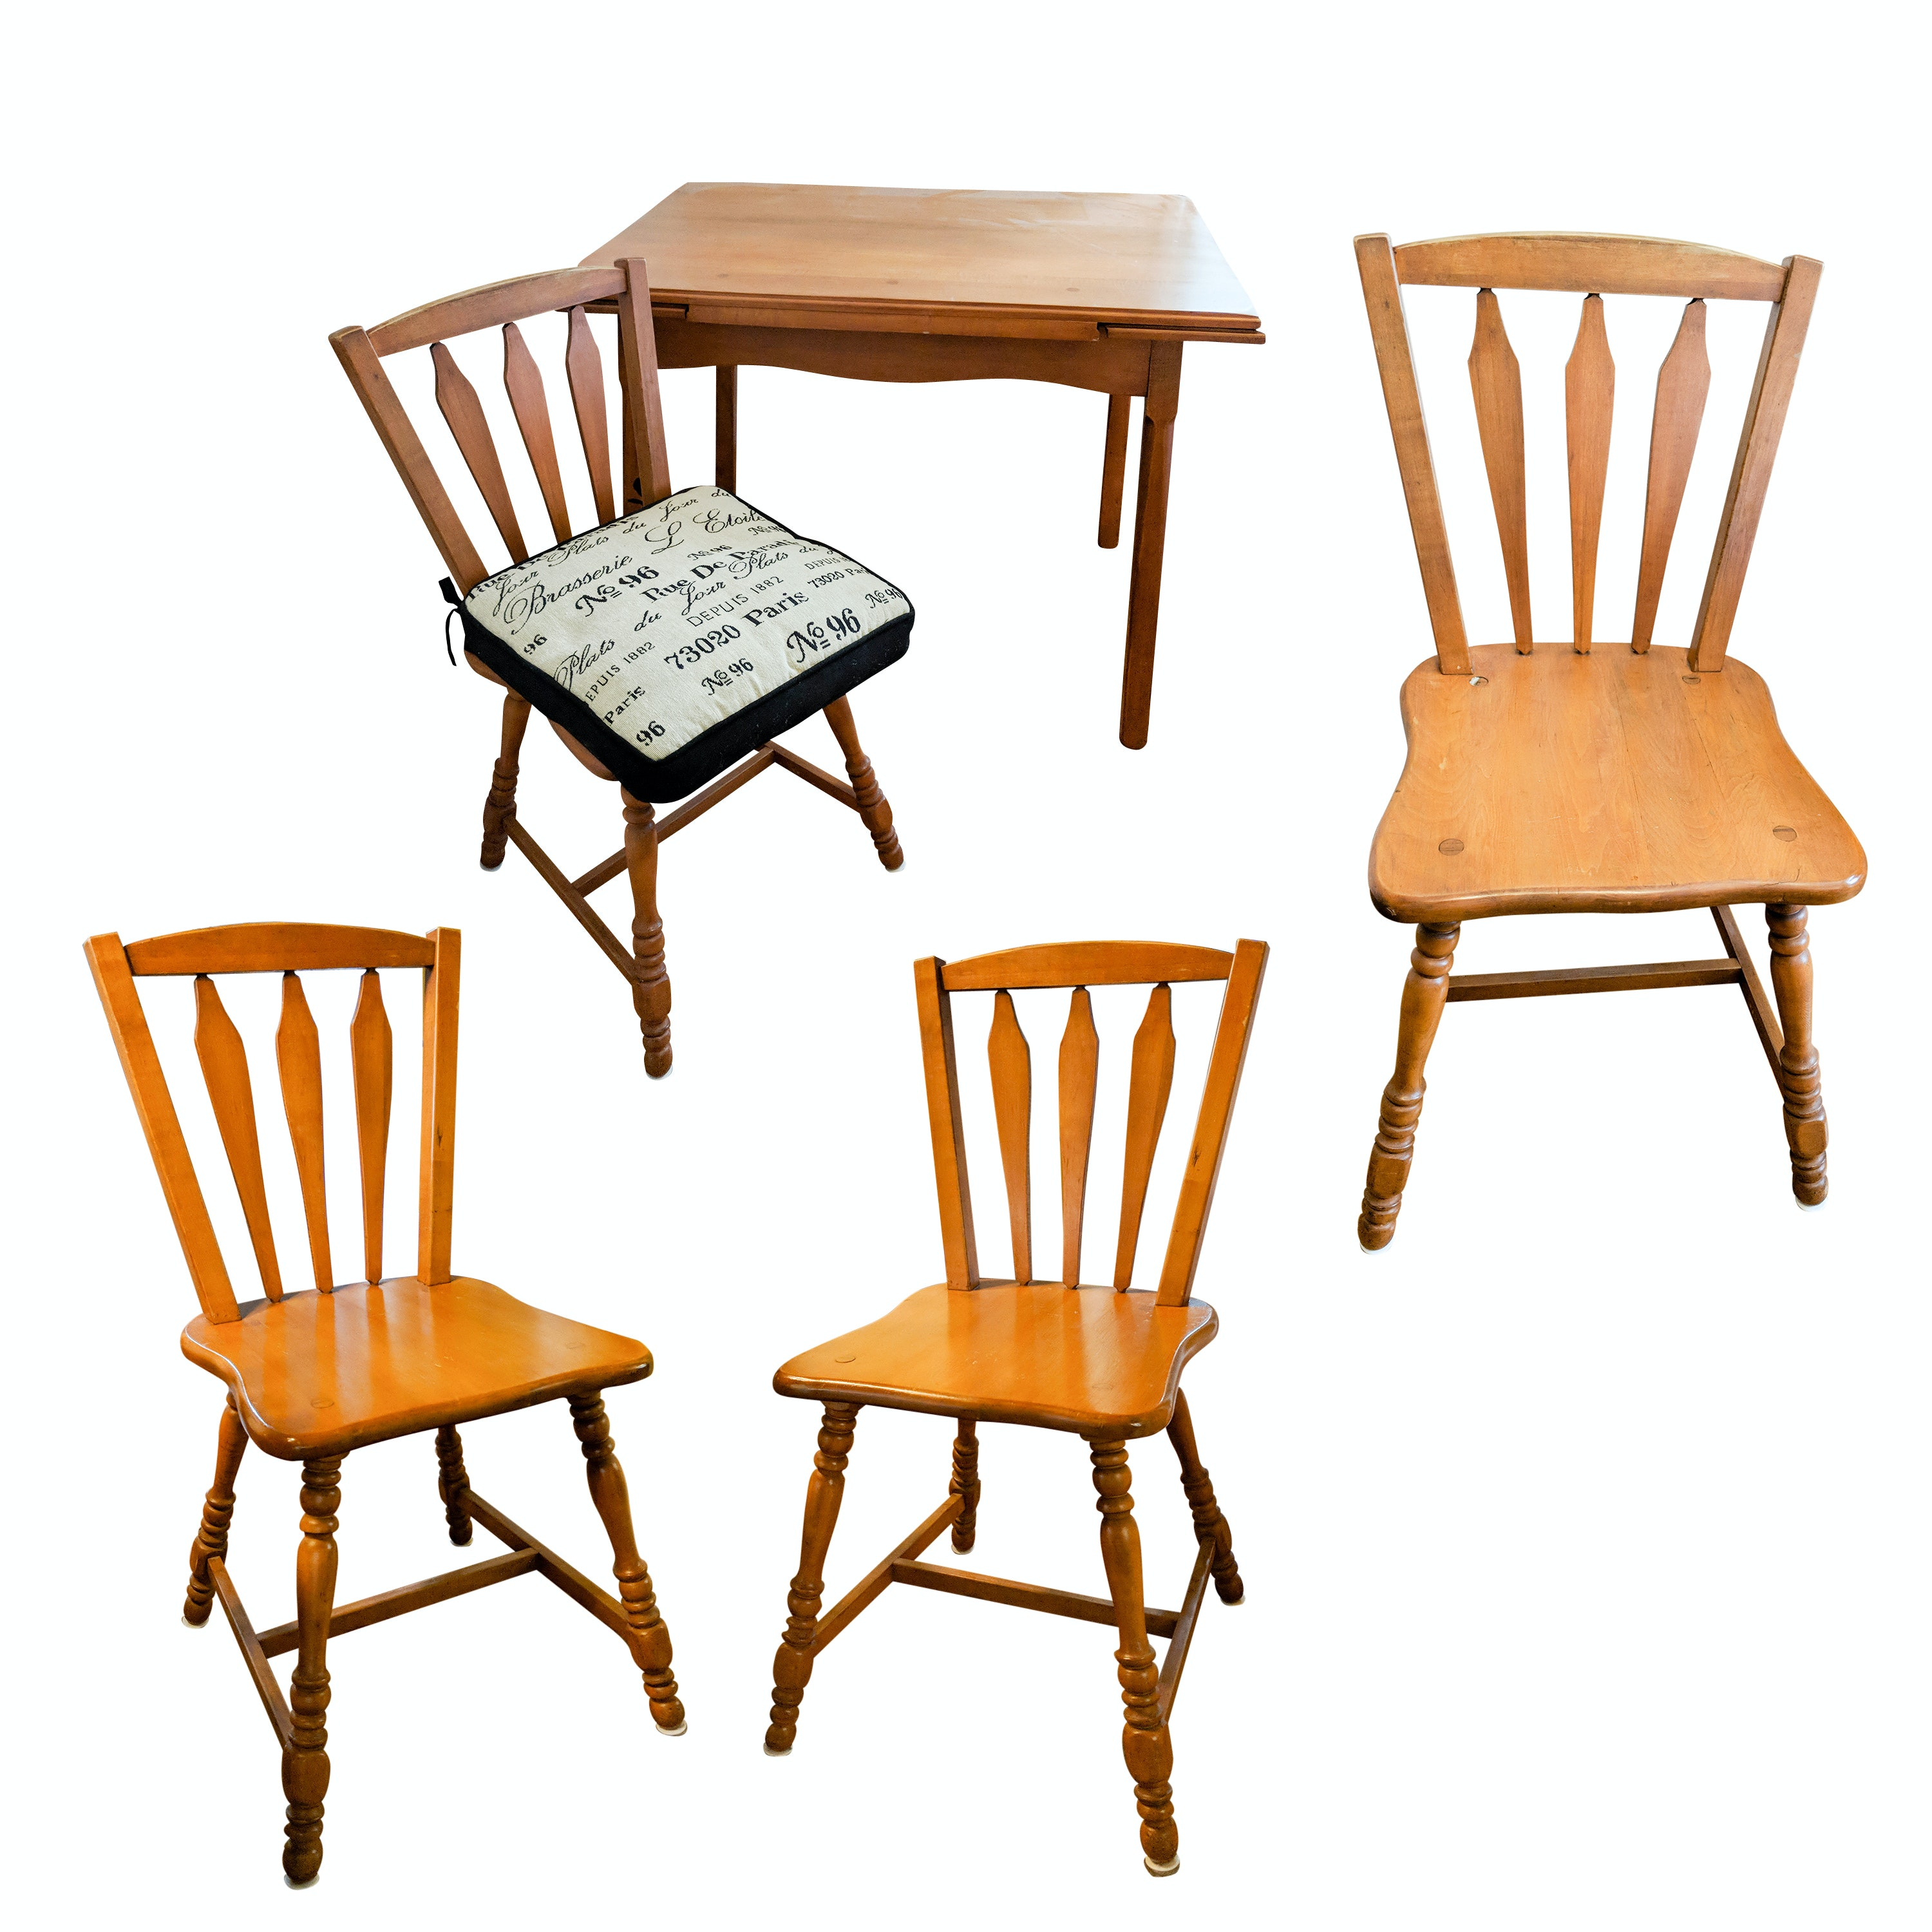 Vintage Shaker Style Adjustable Dining Table And Four Chairs ...